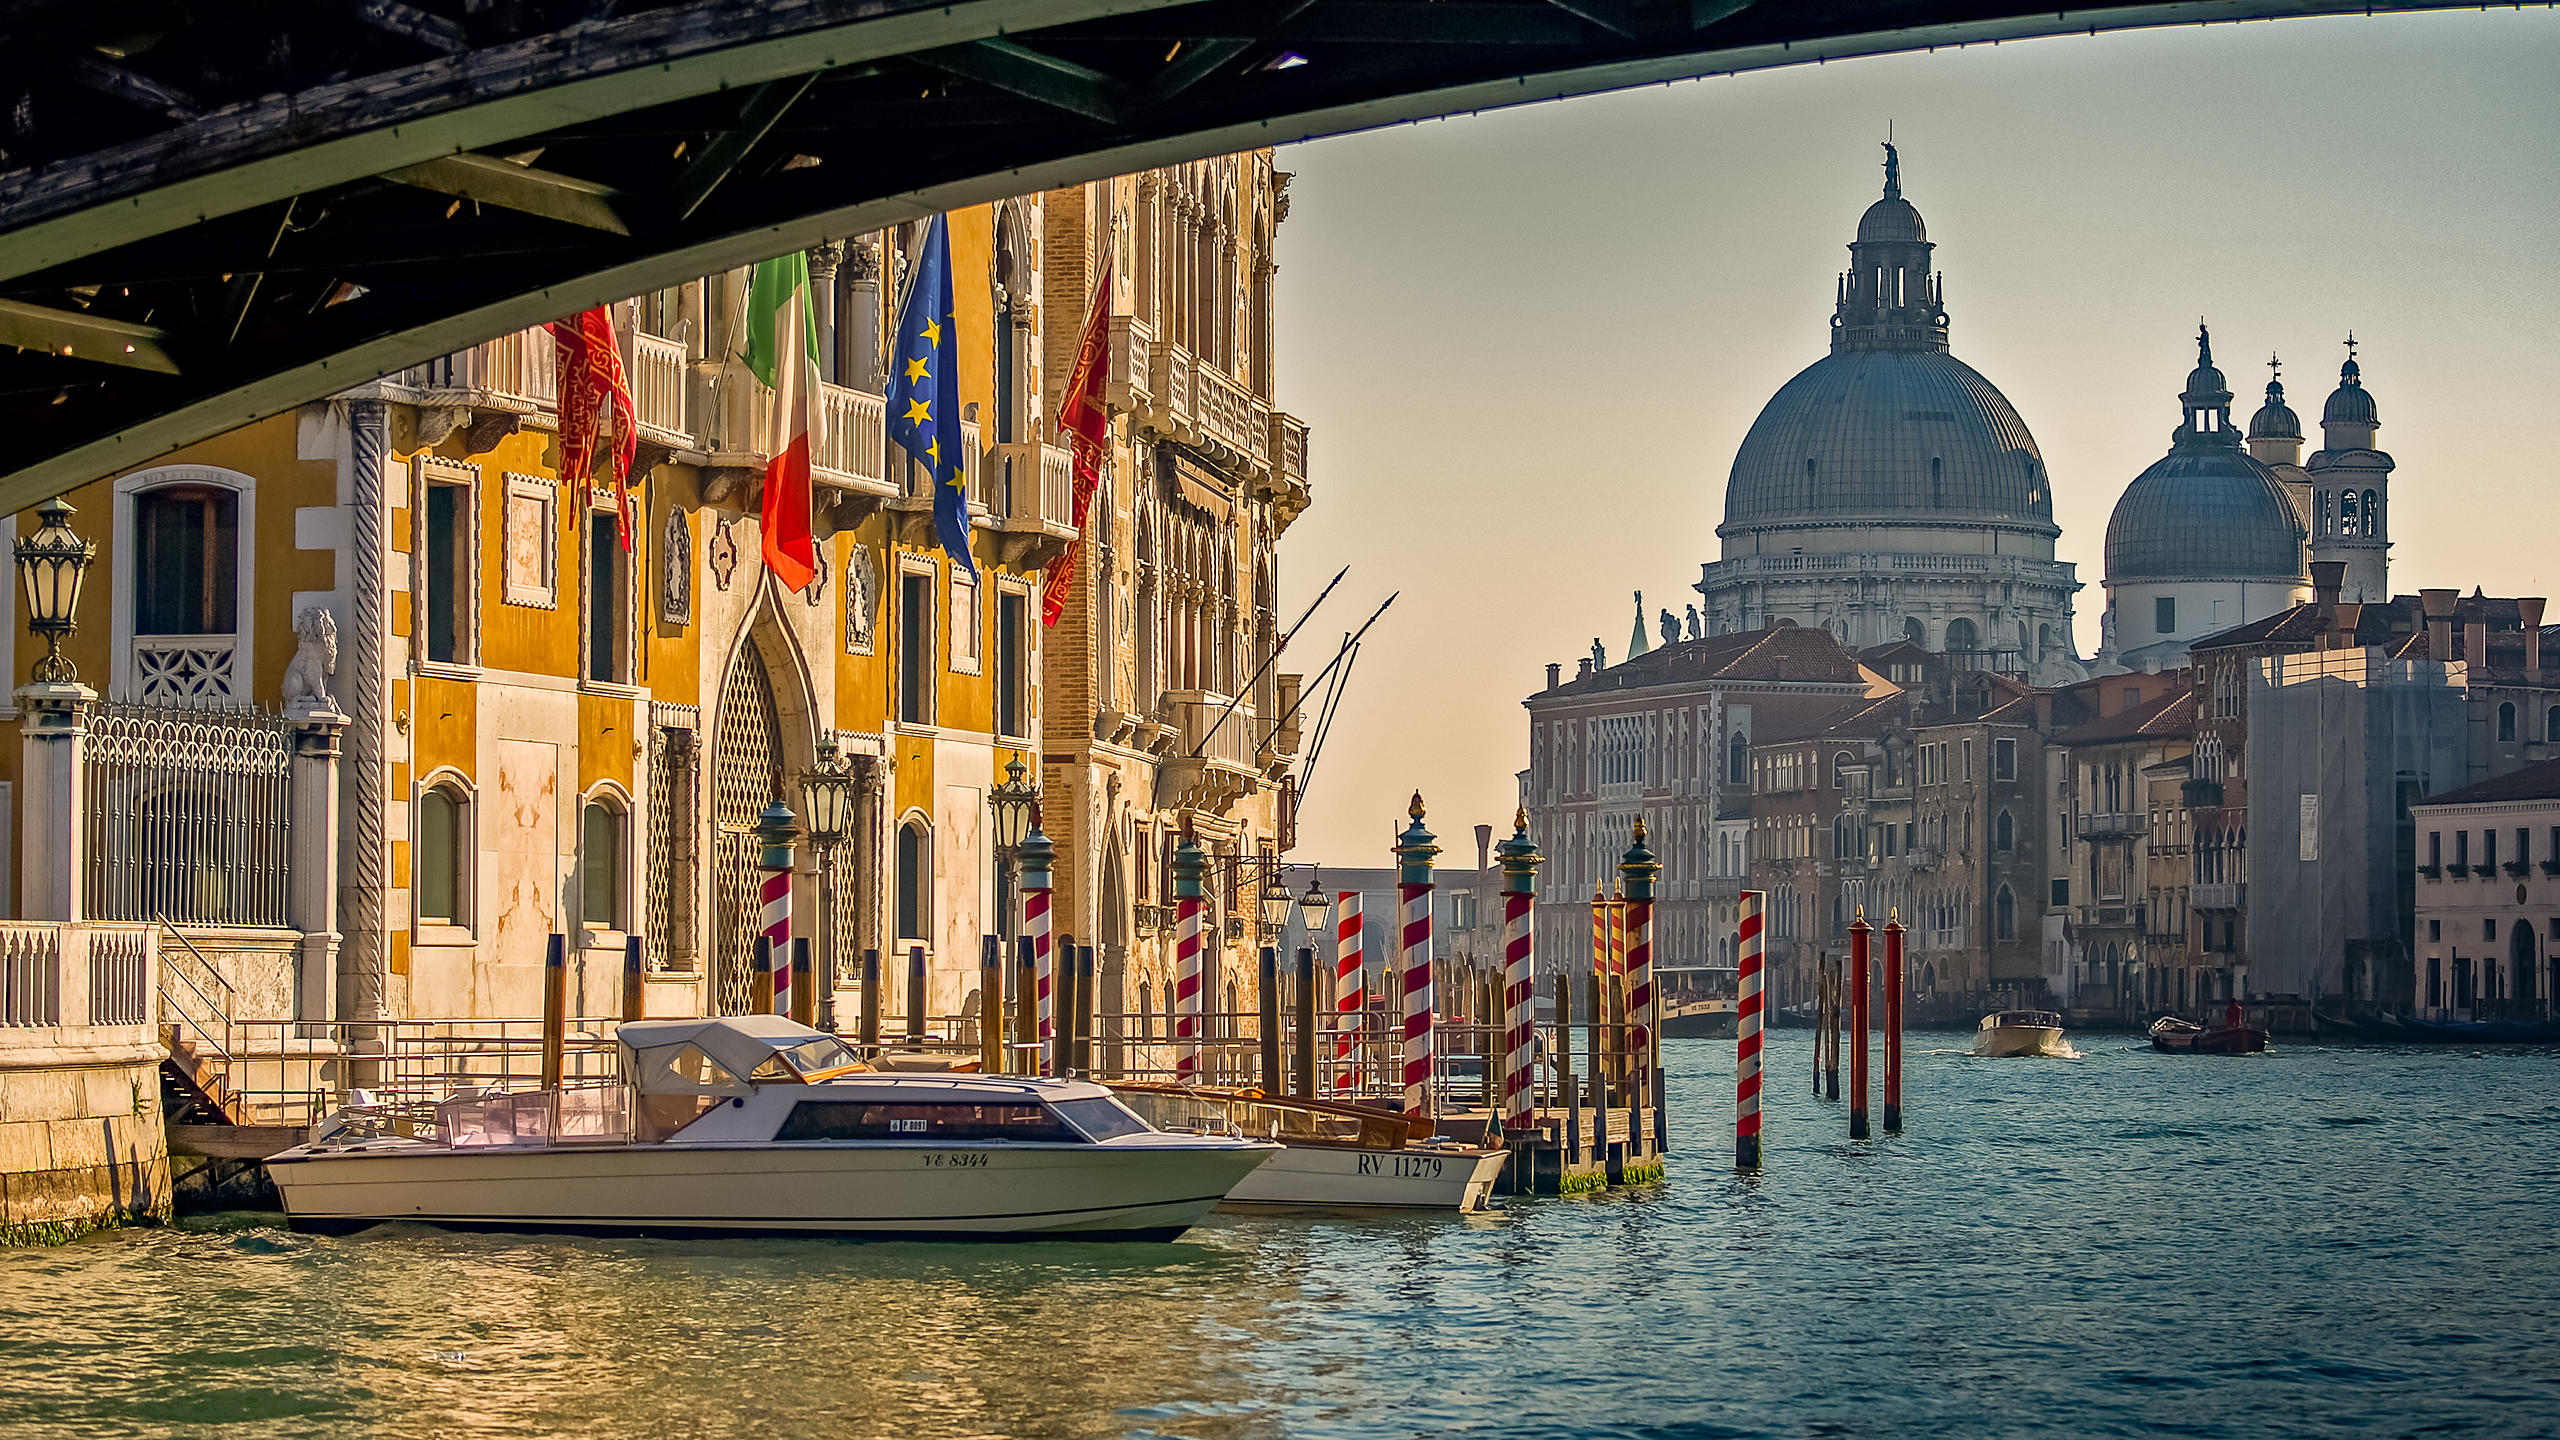 View of Santa Maria della Salute under the Accademia Bridge, Venice